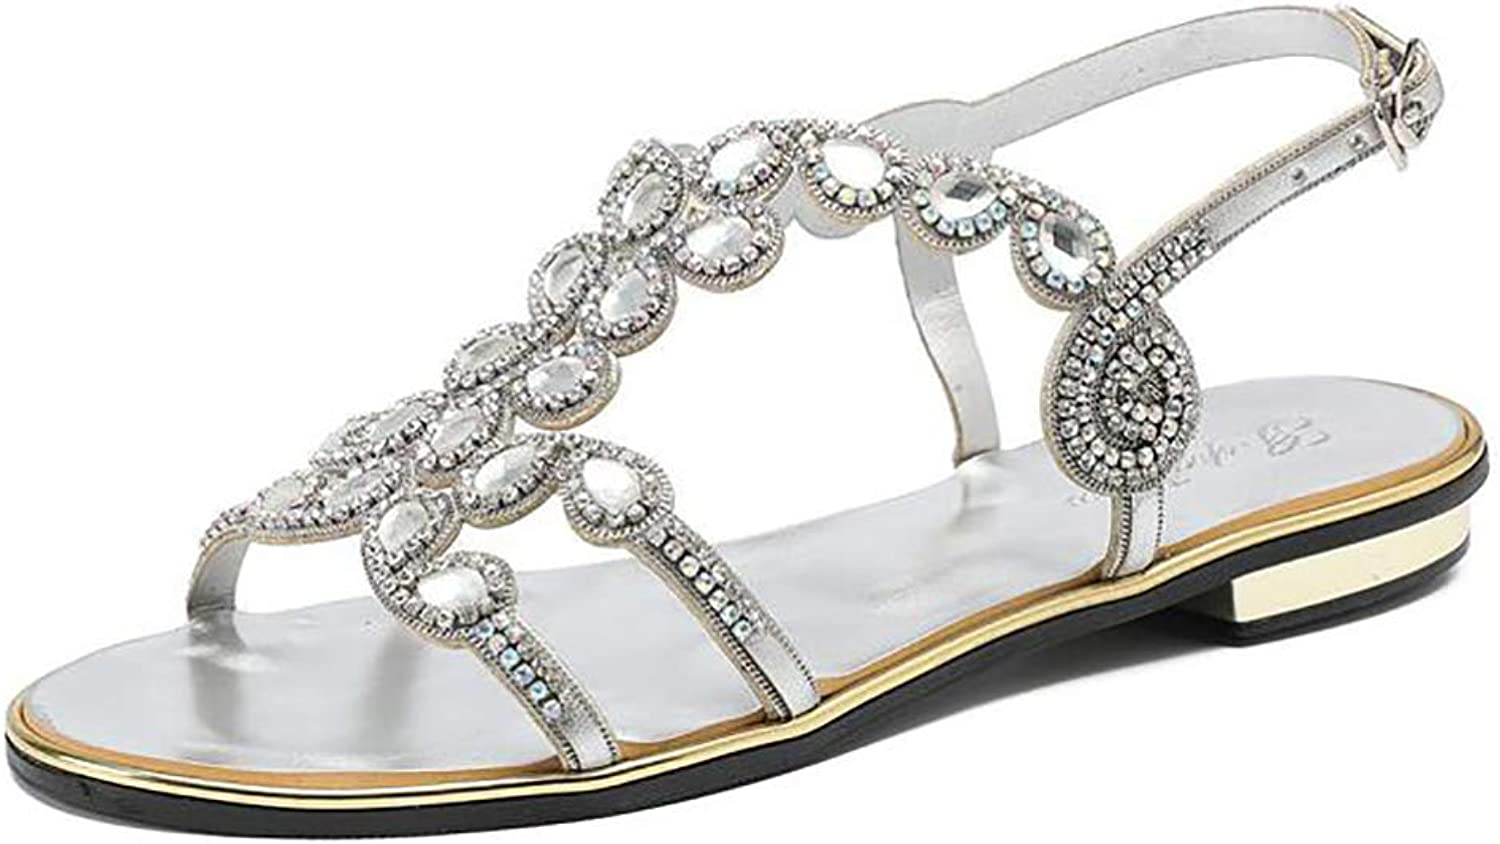 Women's Strappy Sandals Slippers with Rhinestones Glitter Wedding Prom